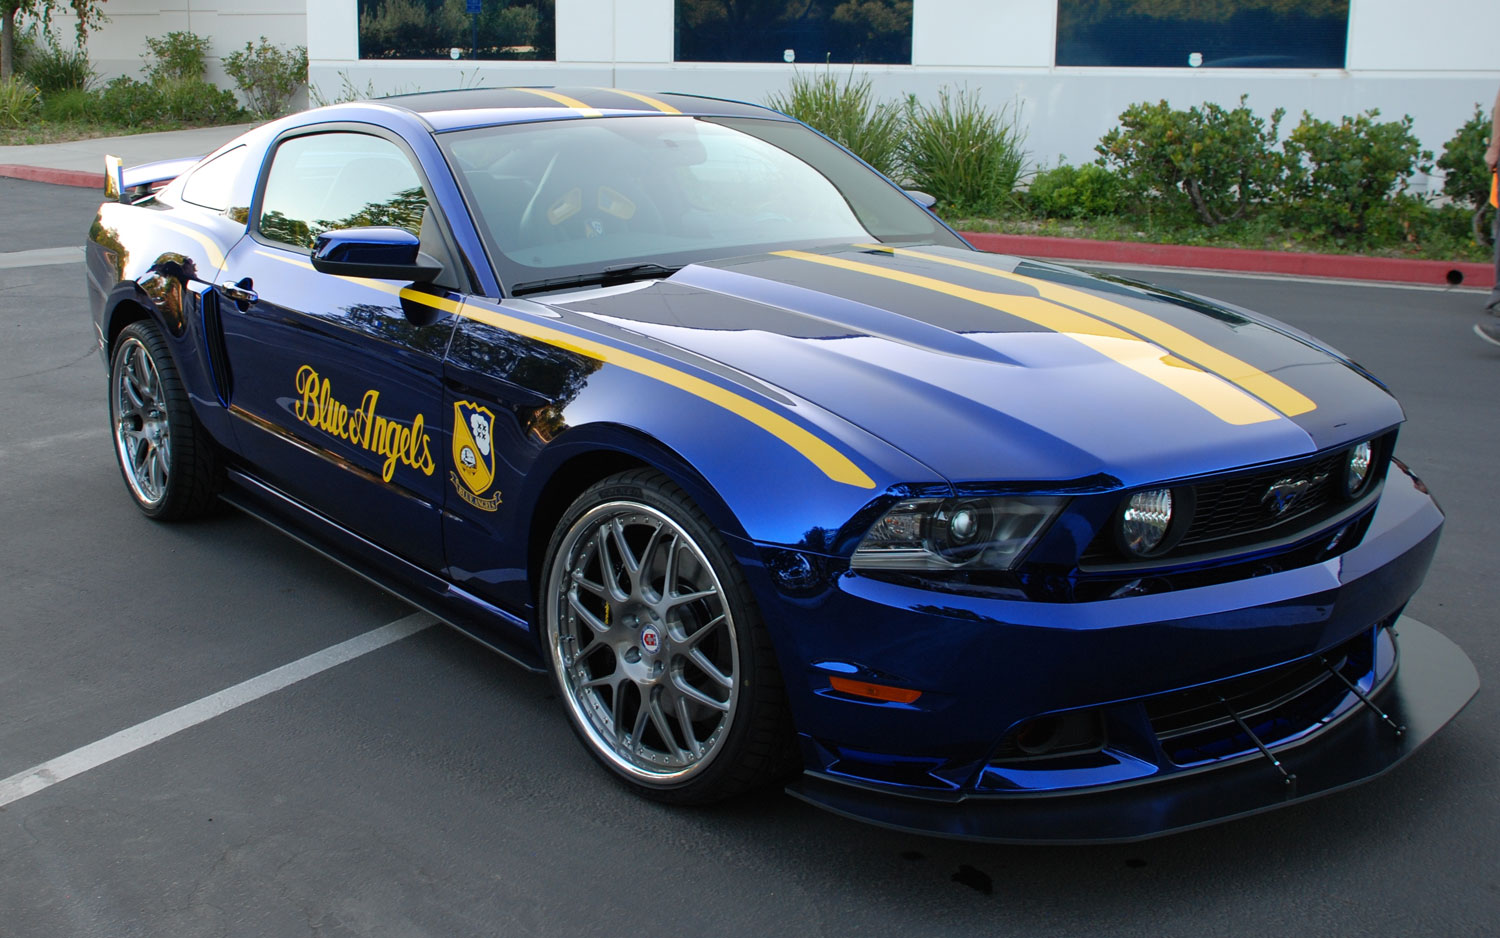 One Off Ford Quot Blue Angels Quot Mustang Gt Headed To Auction In Wisconsin Motor Trend